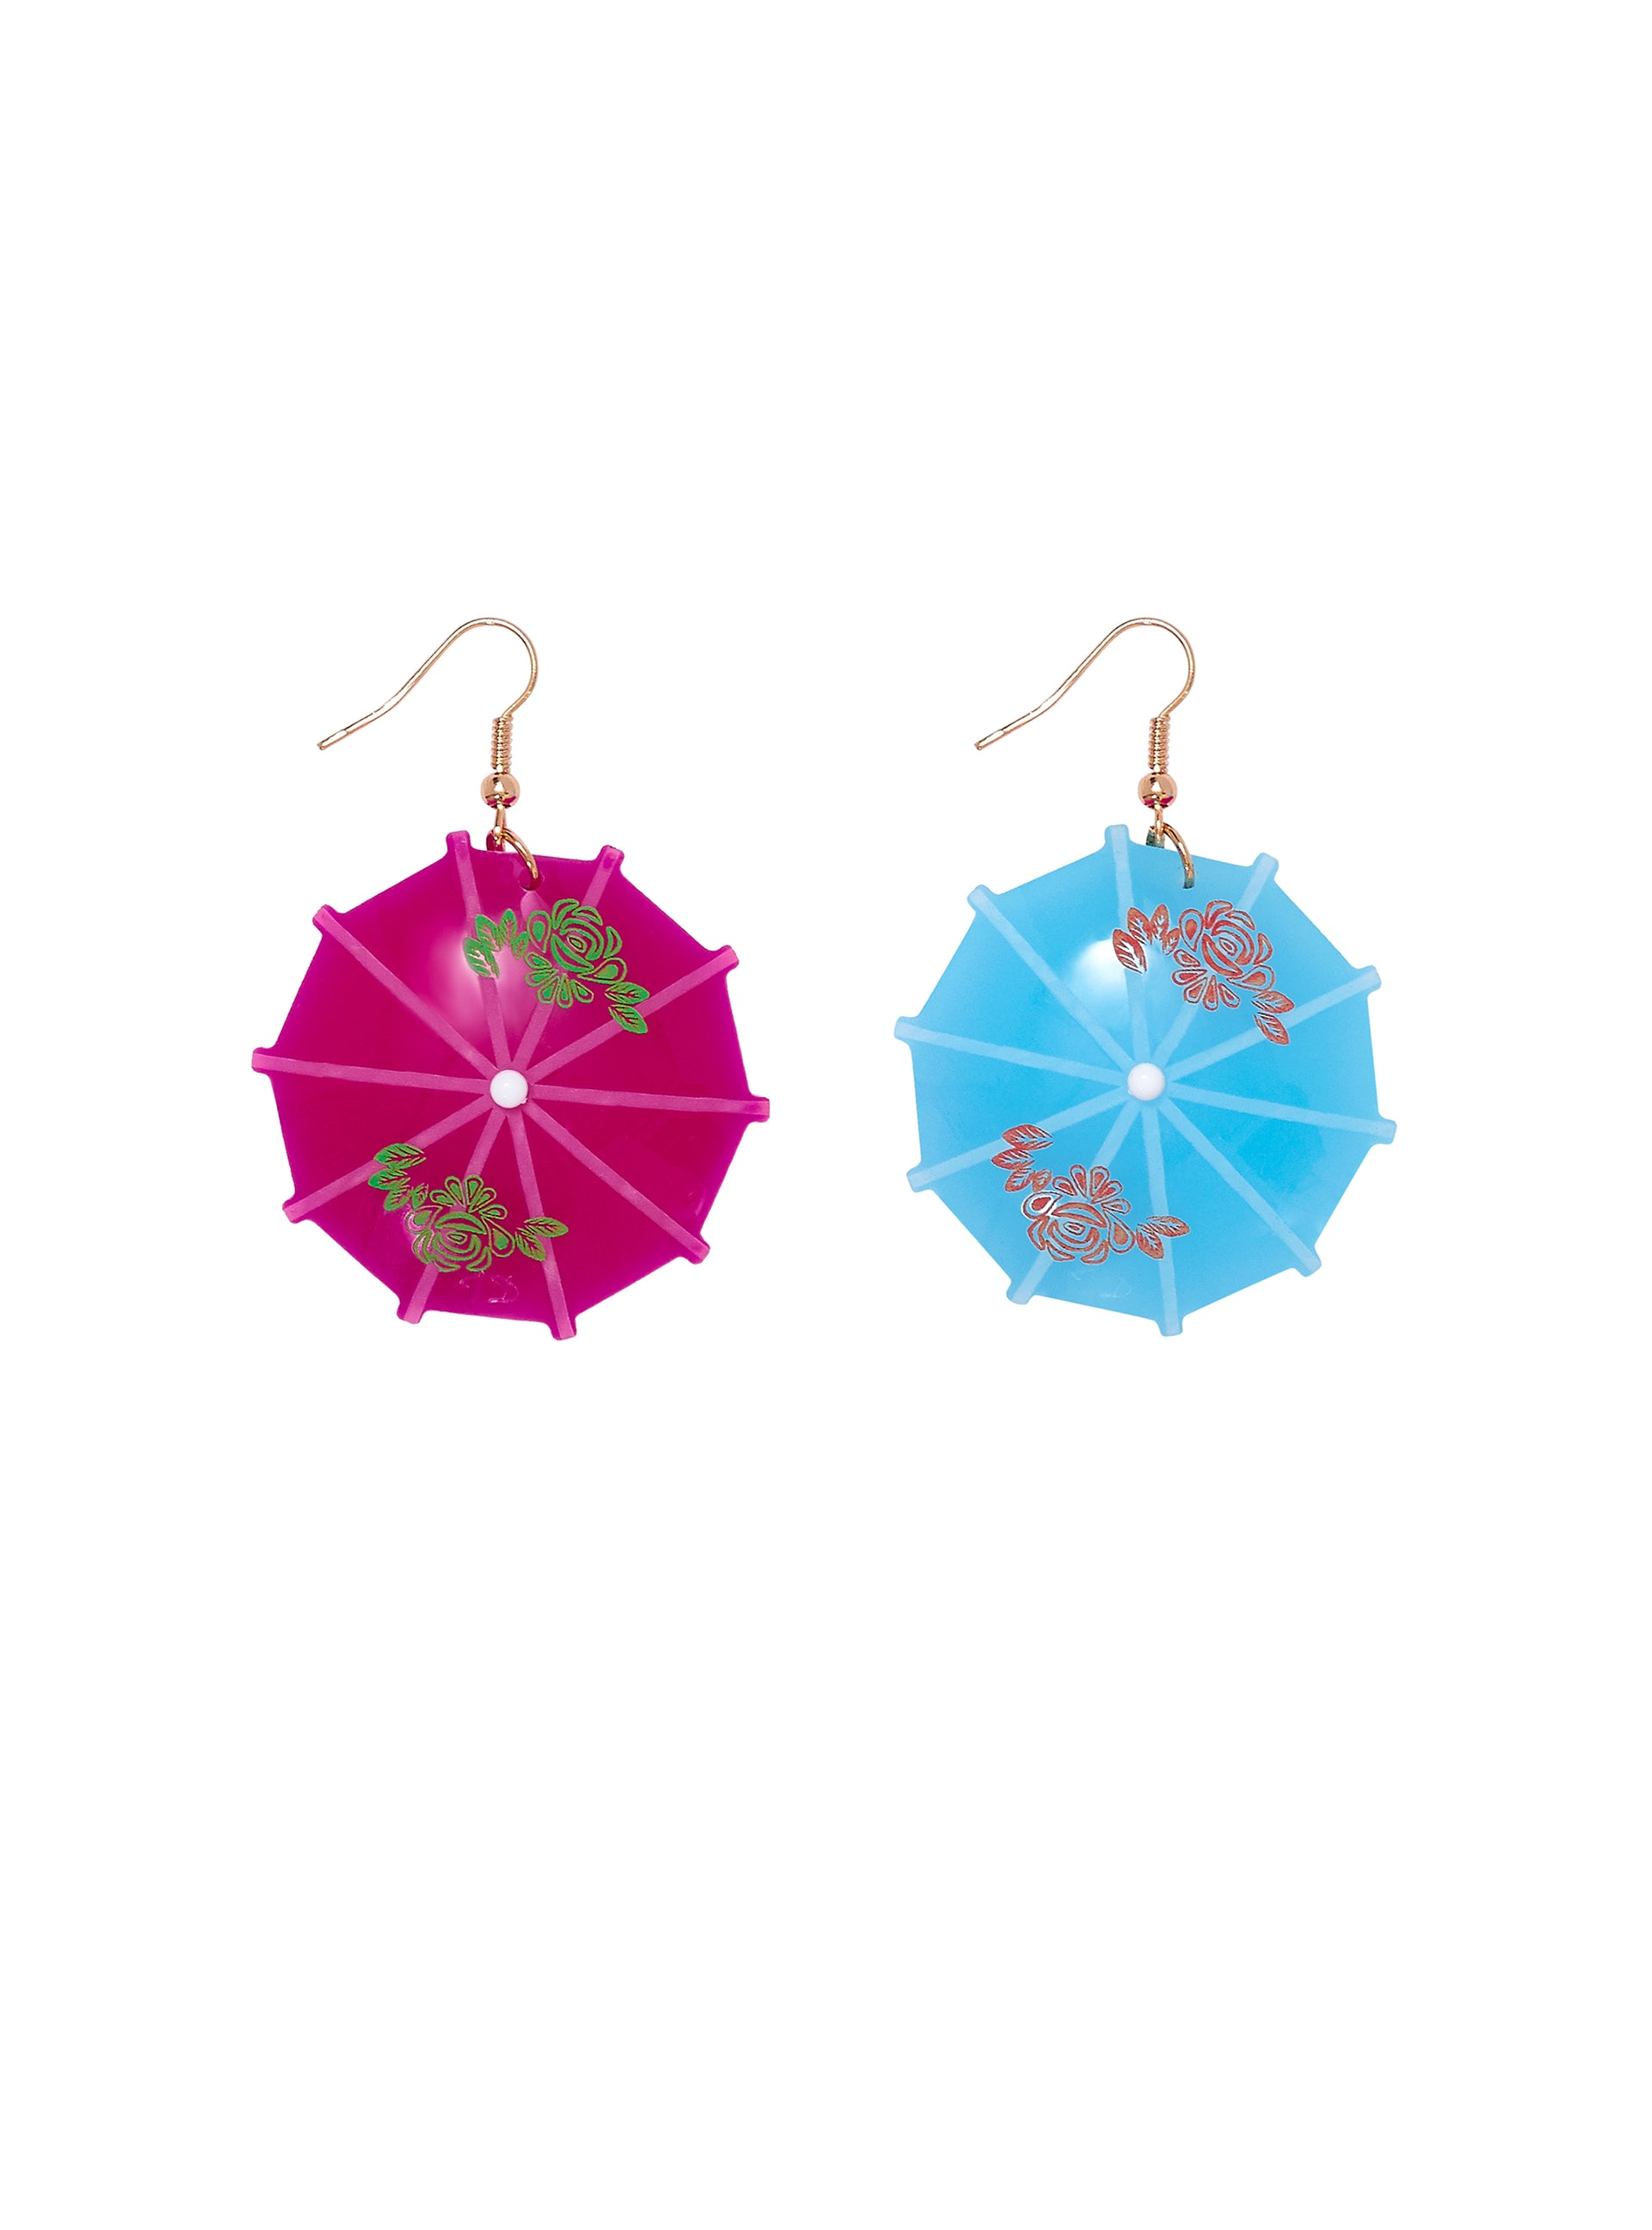 Cocktail-Umbrella-Drop-Earrings-Mismatched